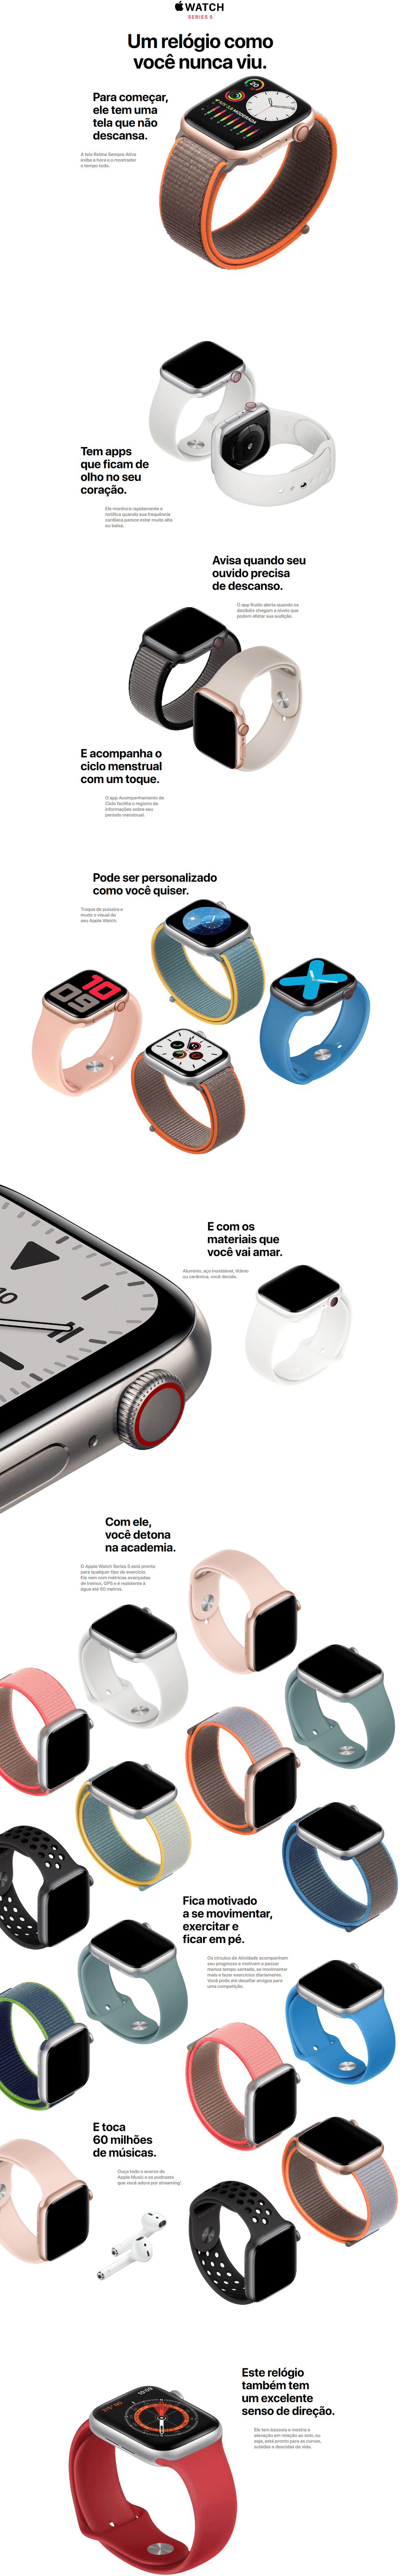 apple watch serie 5 novo 44 mm cinza espacial